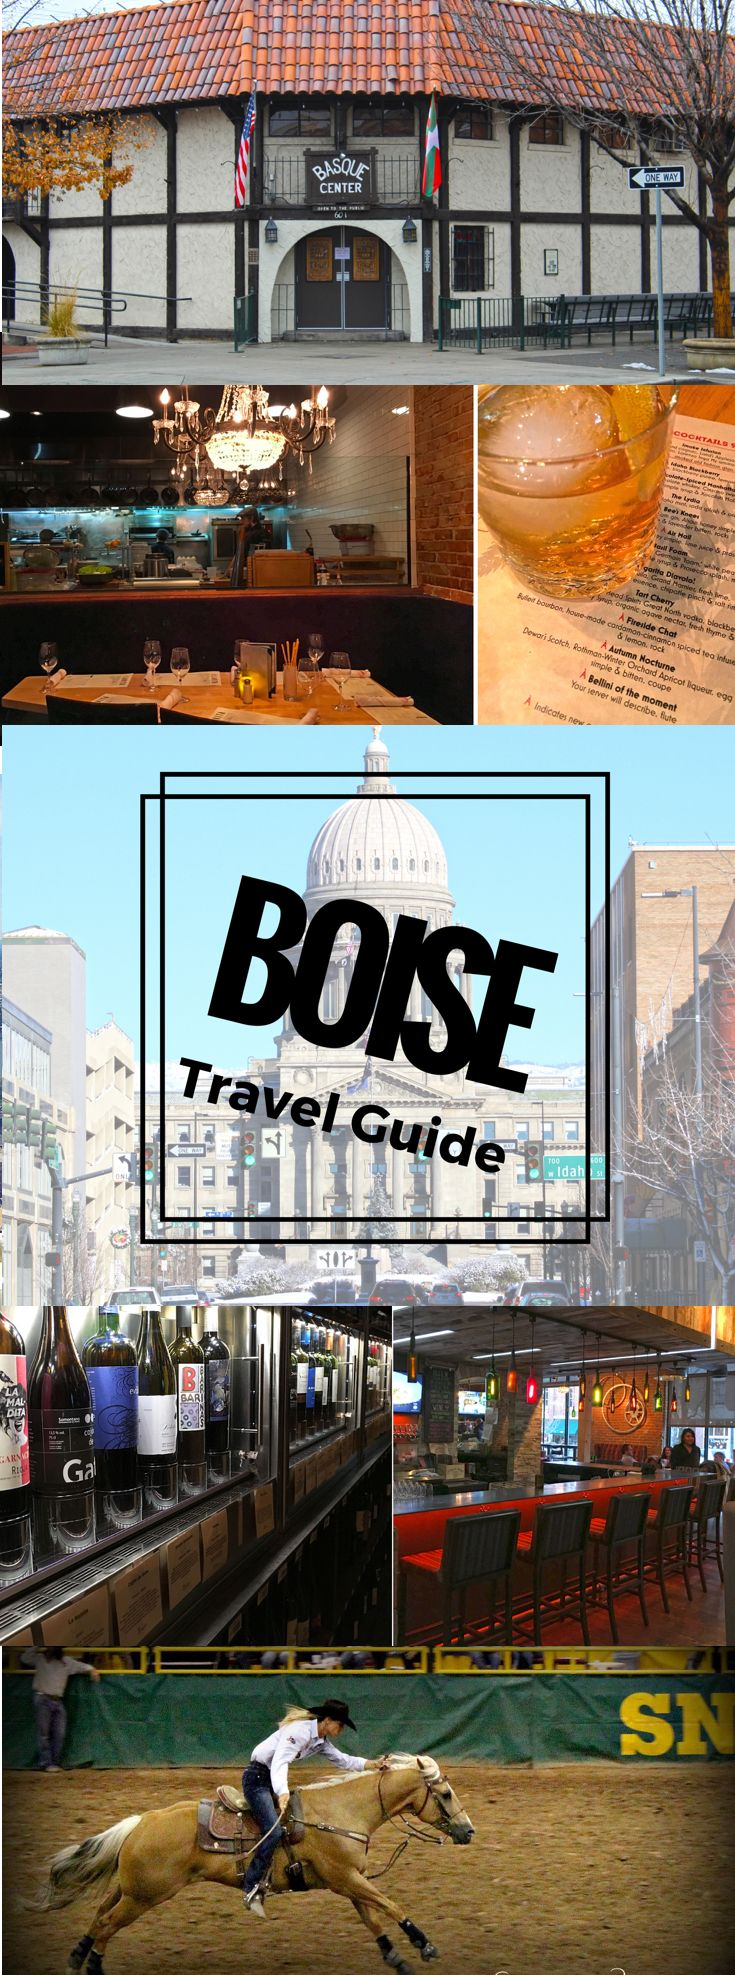 Discover the best things to do in Boise, Idaho with this Boise travel guide. Included are best Boise restaurants, best bars, Boise events and more.